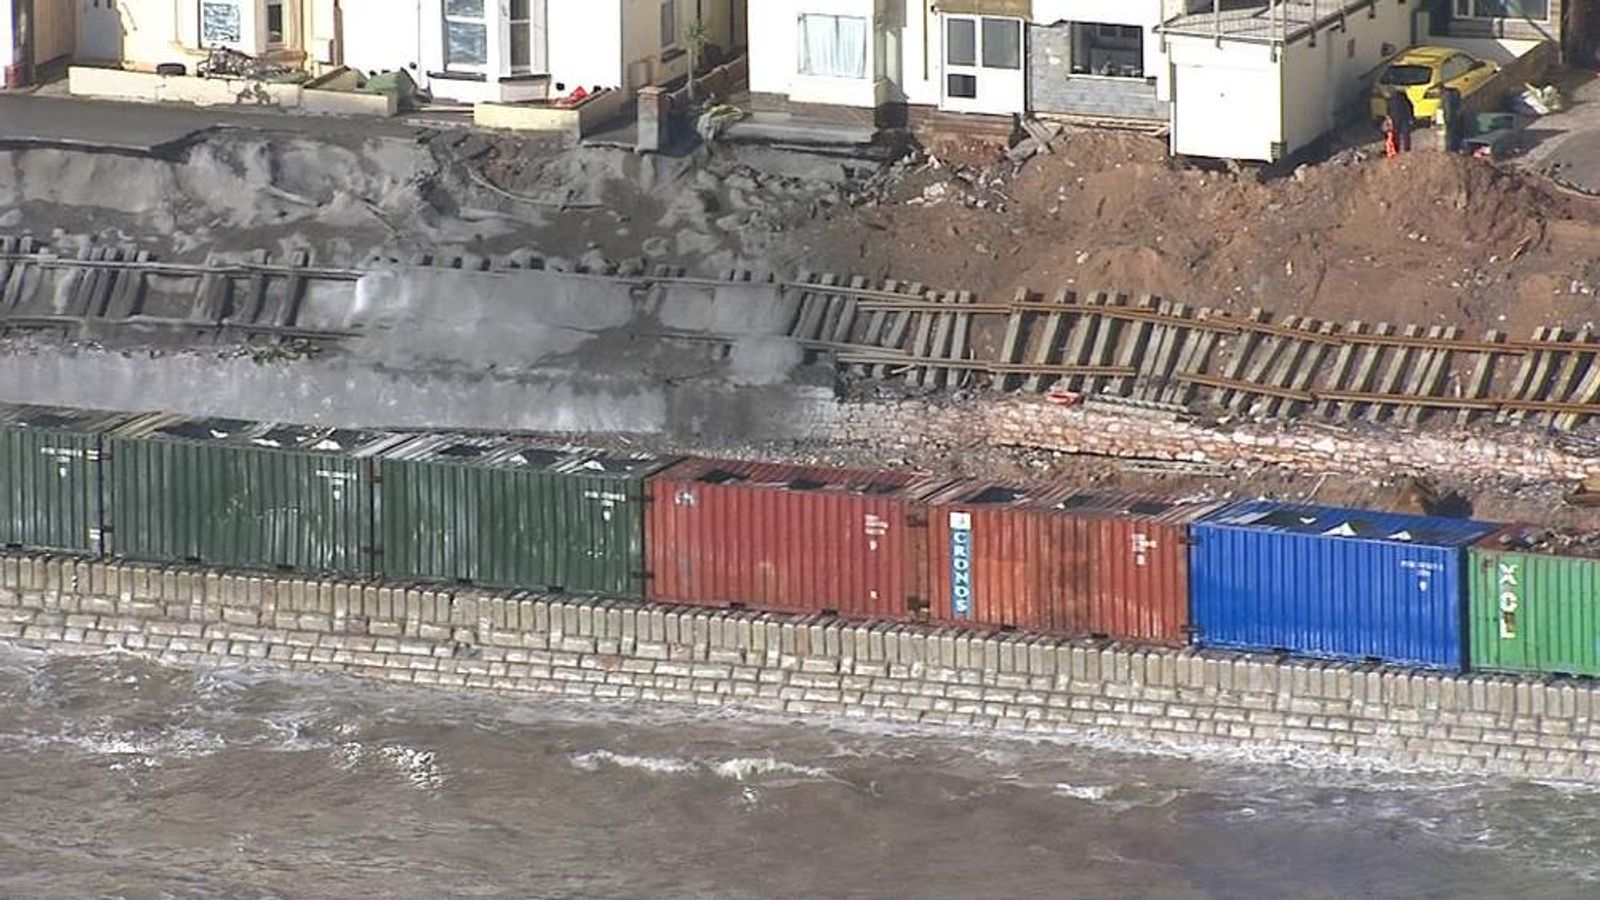 Concrete filled containers protecting the rail tracks at Dawlish